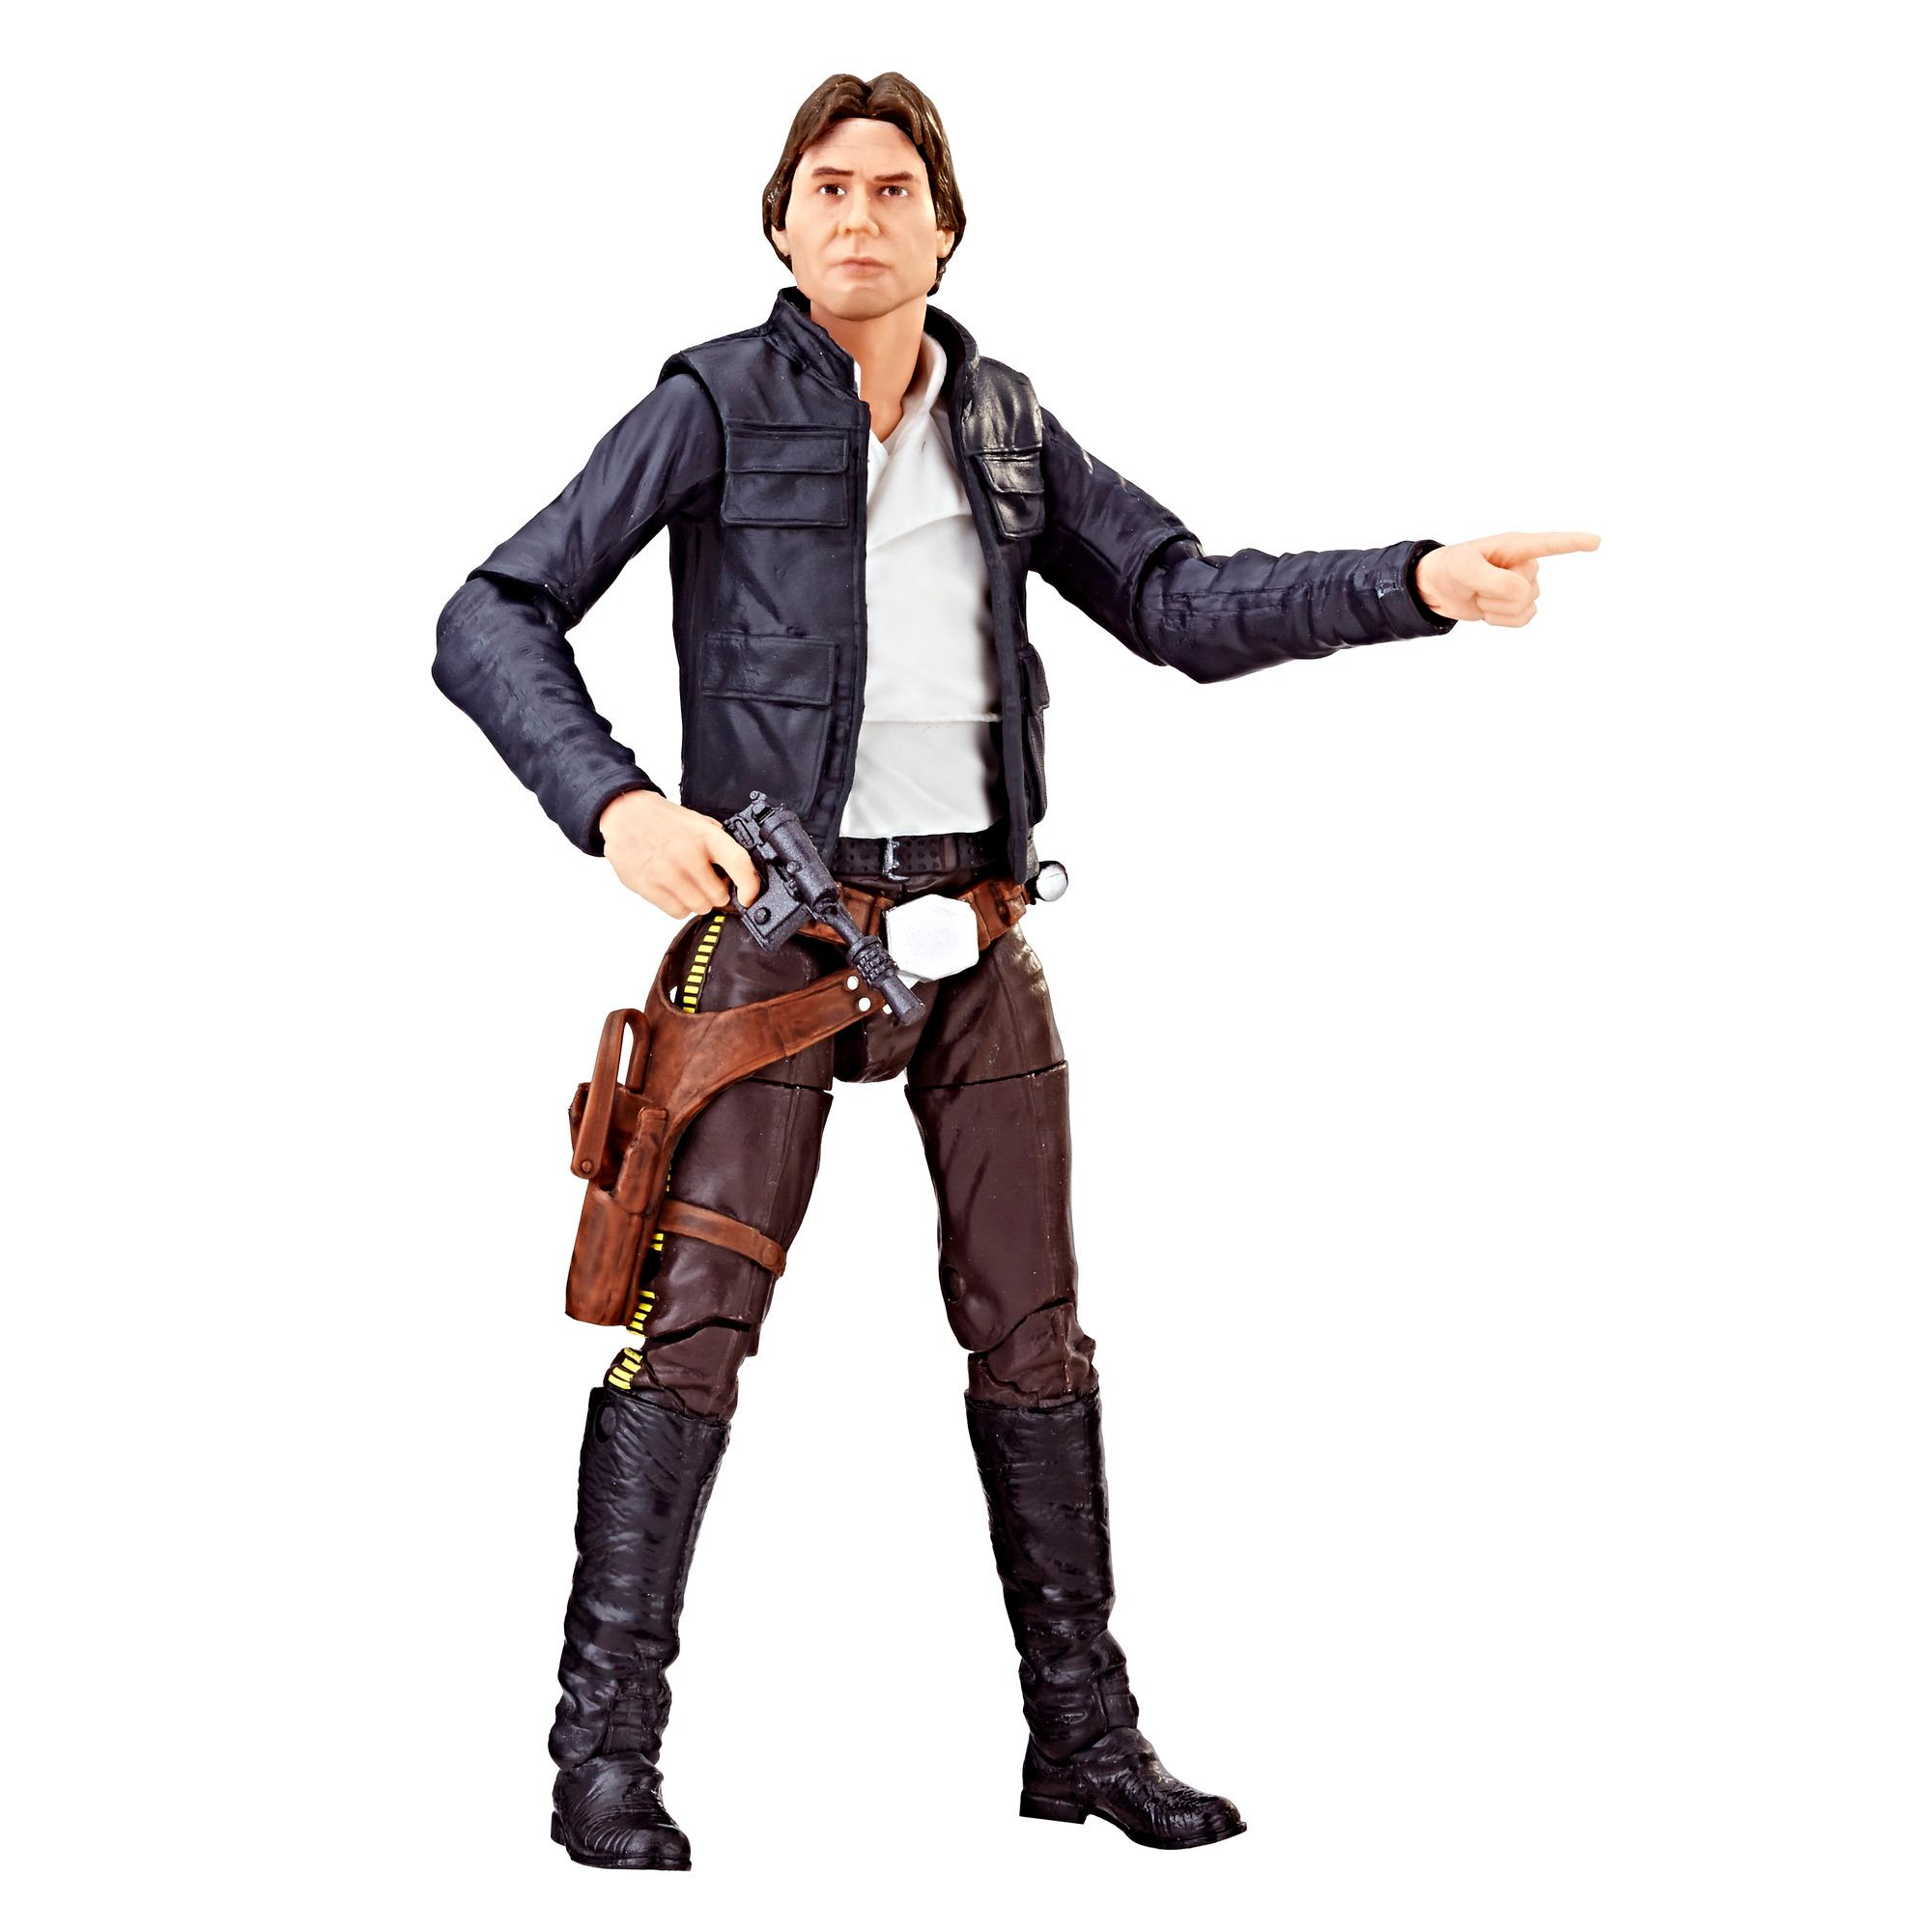 Star Wars The Black Series - Figura de Rebel Trooper de 15 cm